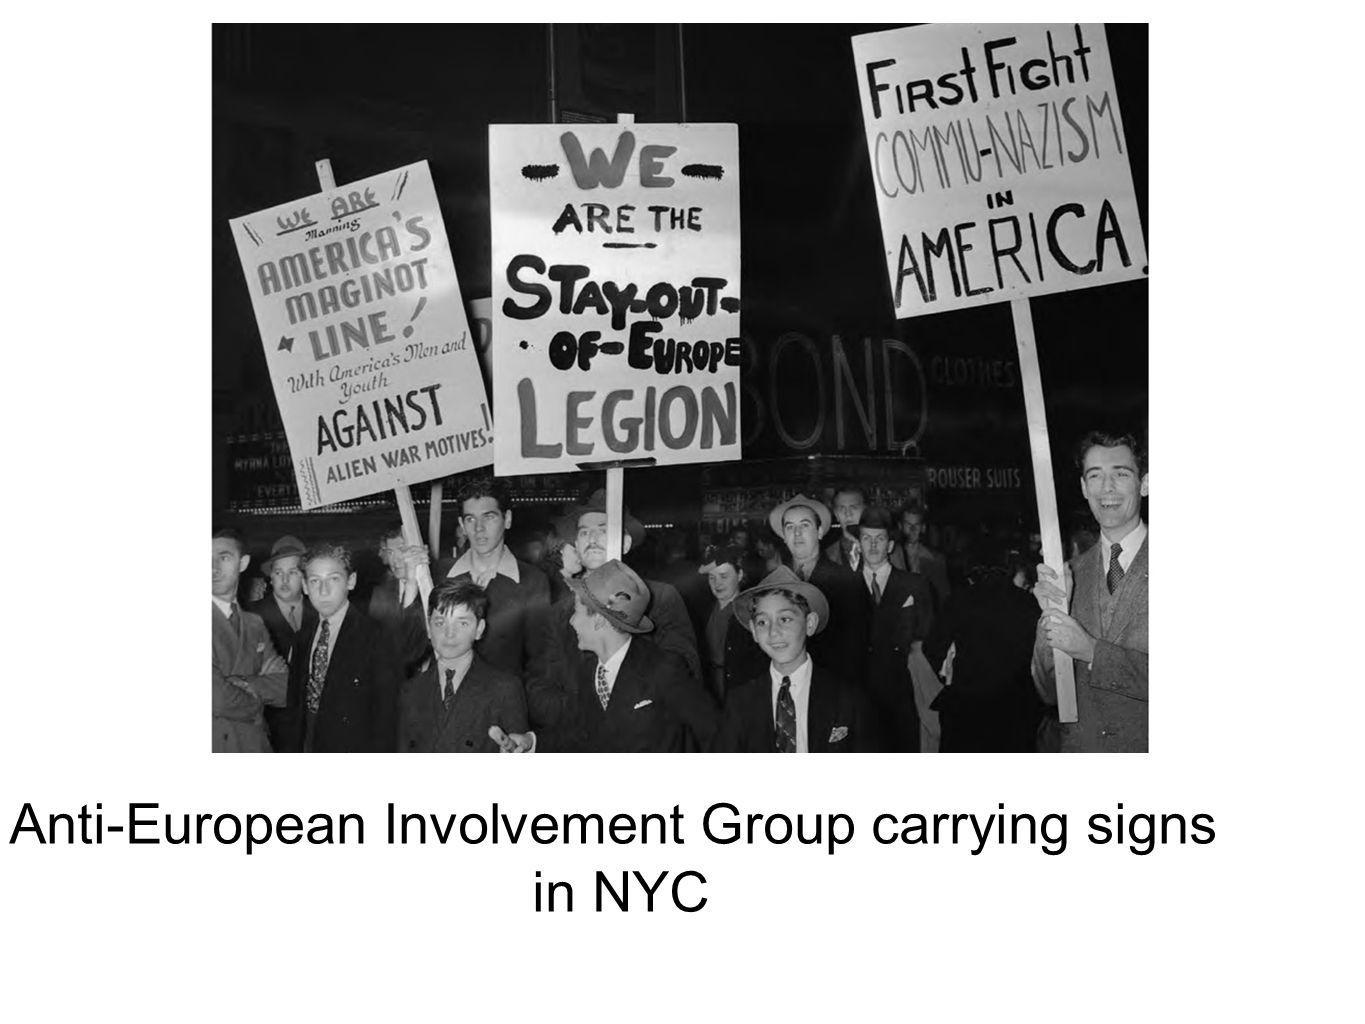 Anti-European Involvement Group carrying signs